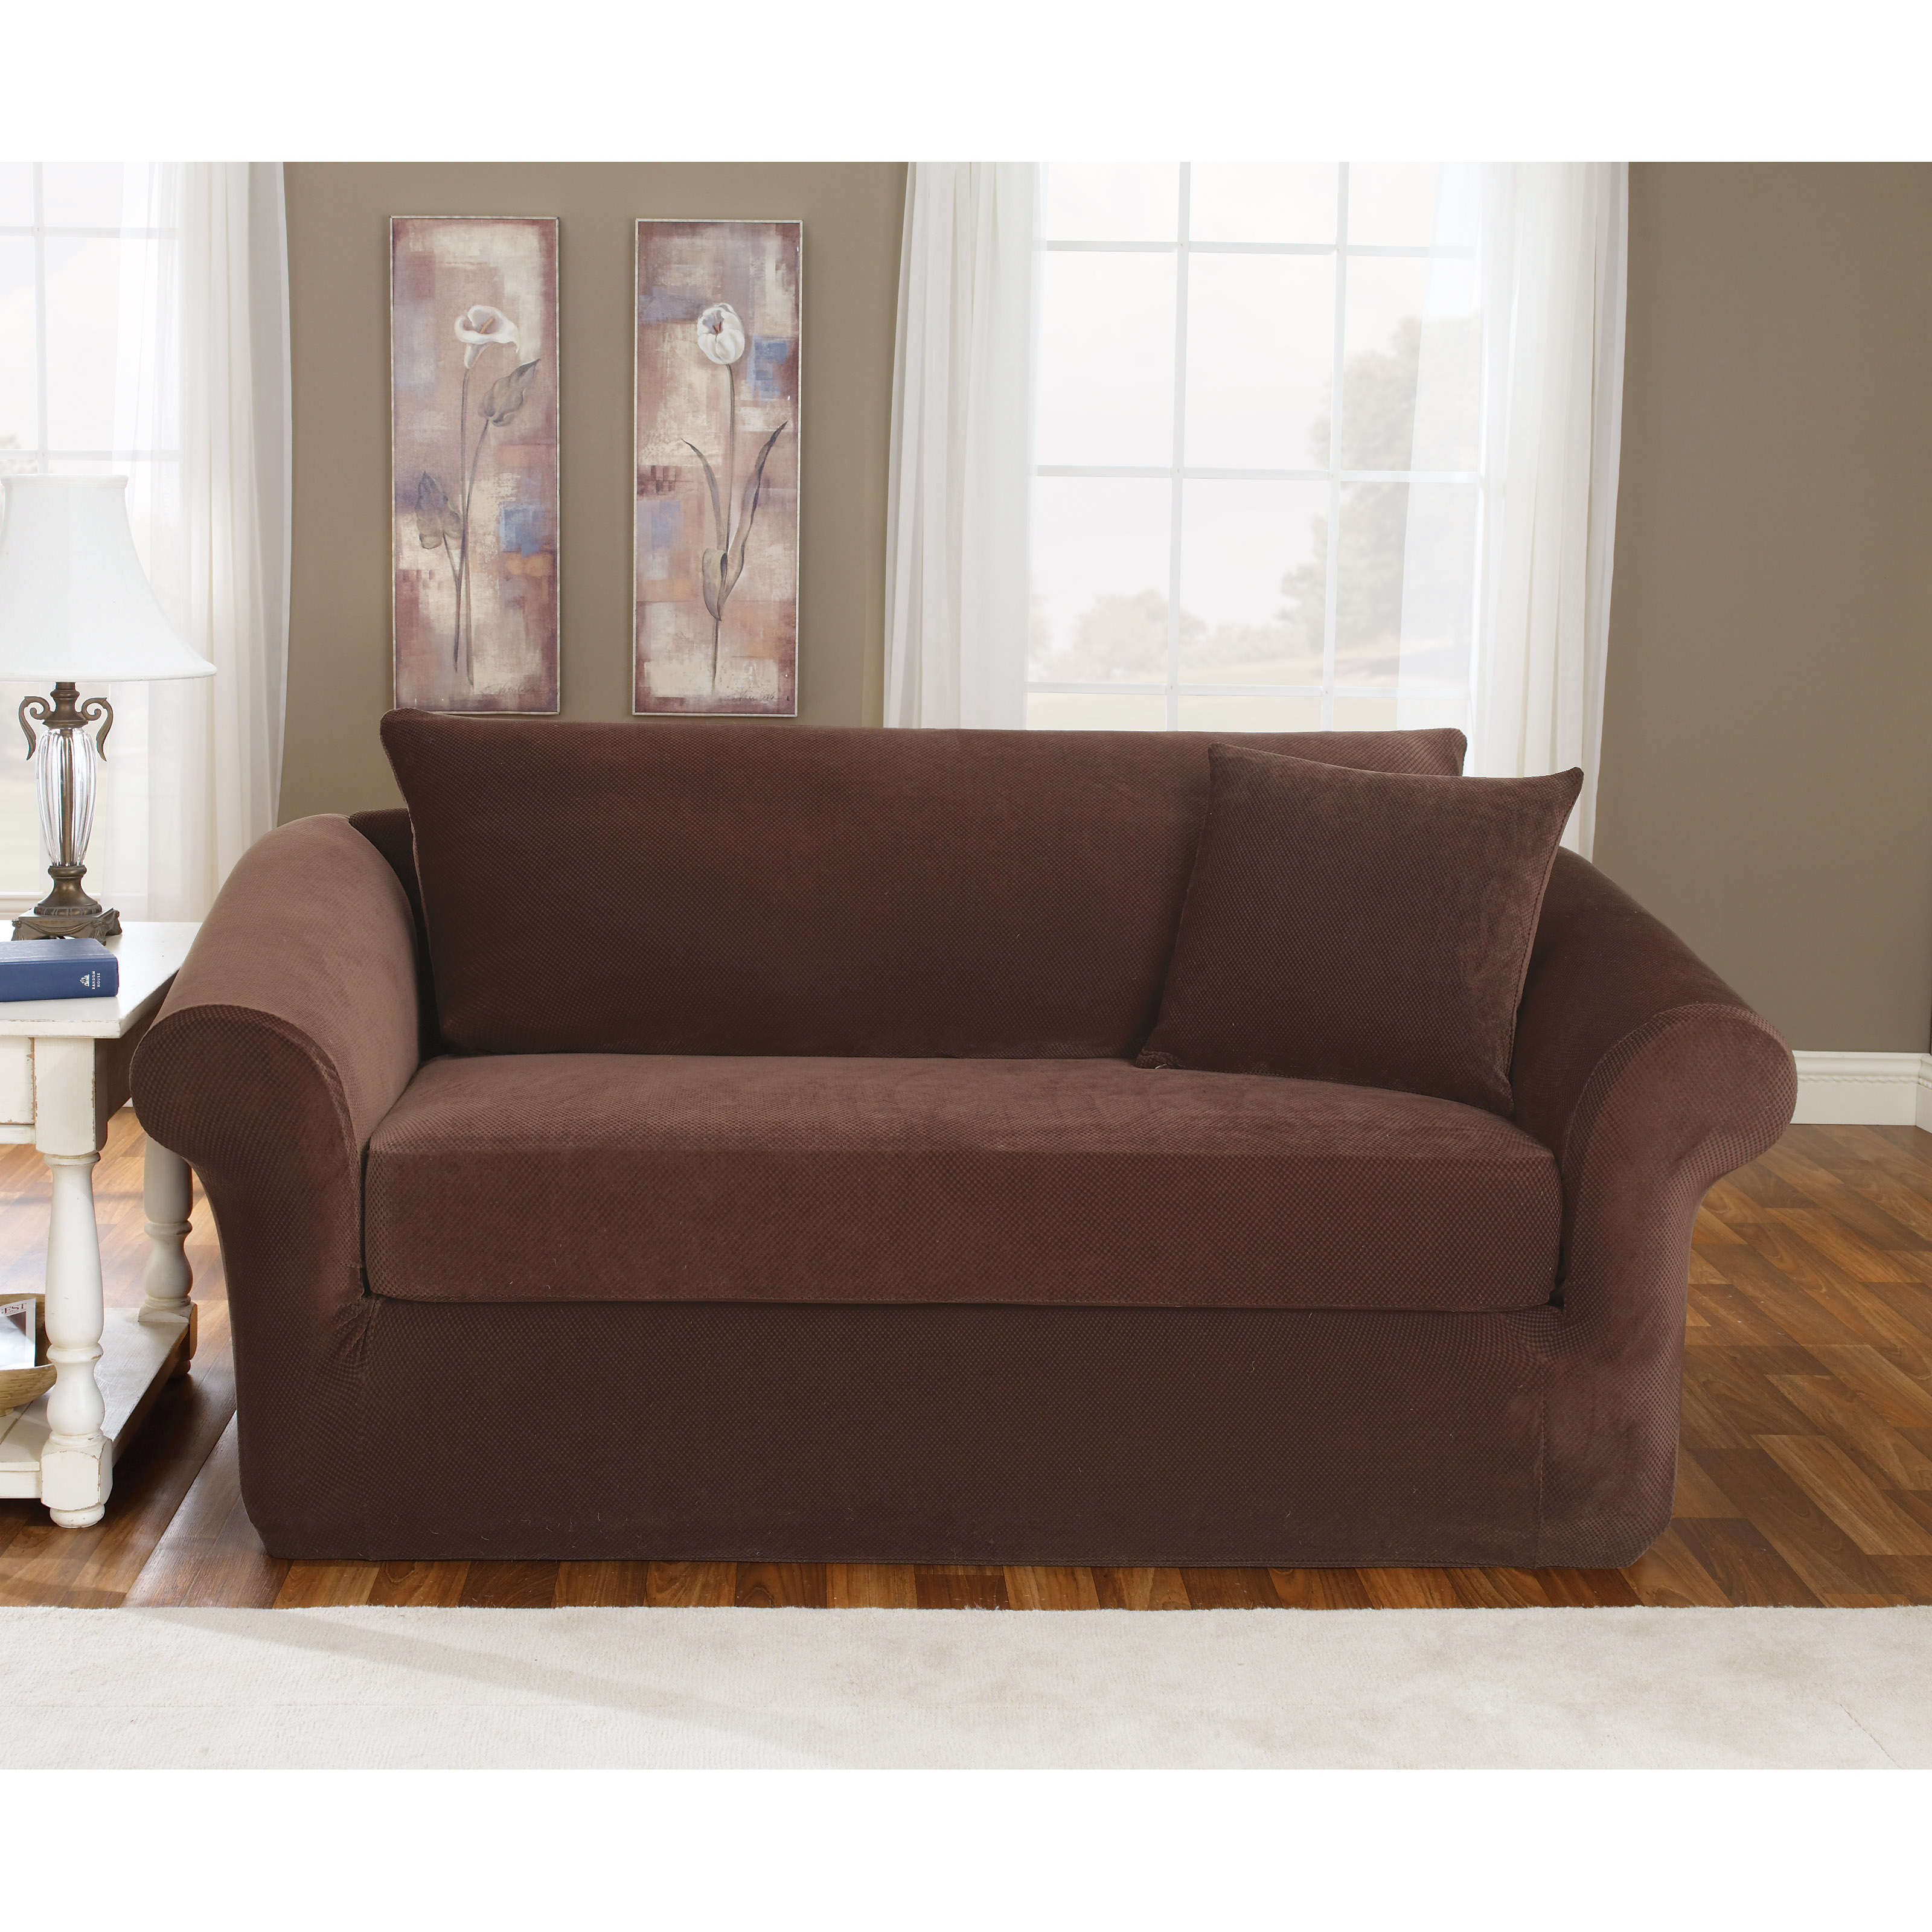 Sure Fit Stretch Pique T Cushion Three Piece Sofa Slipcover